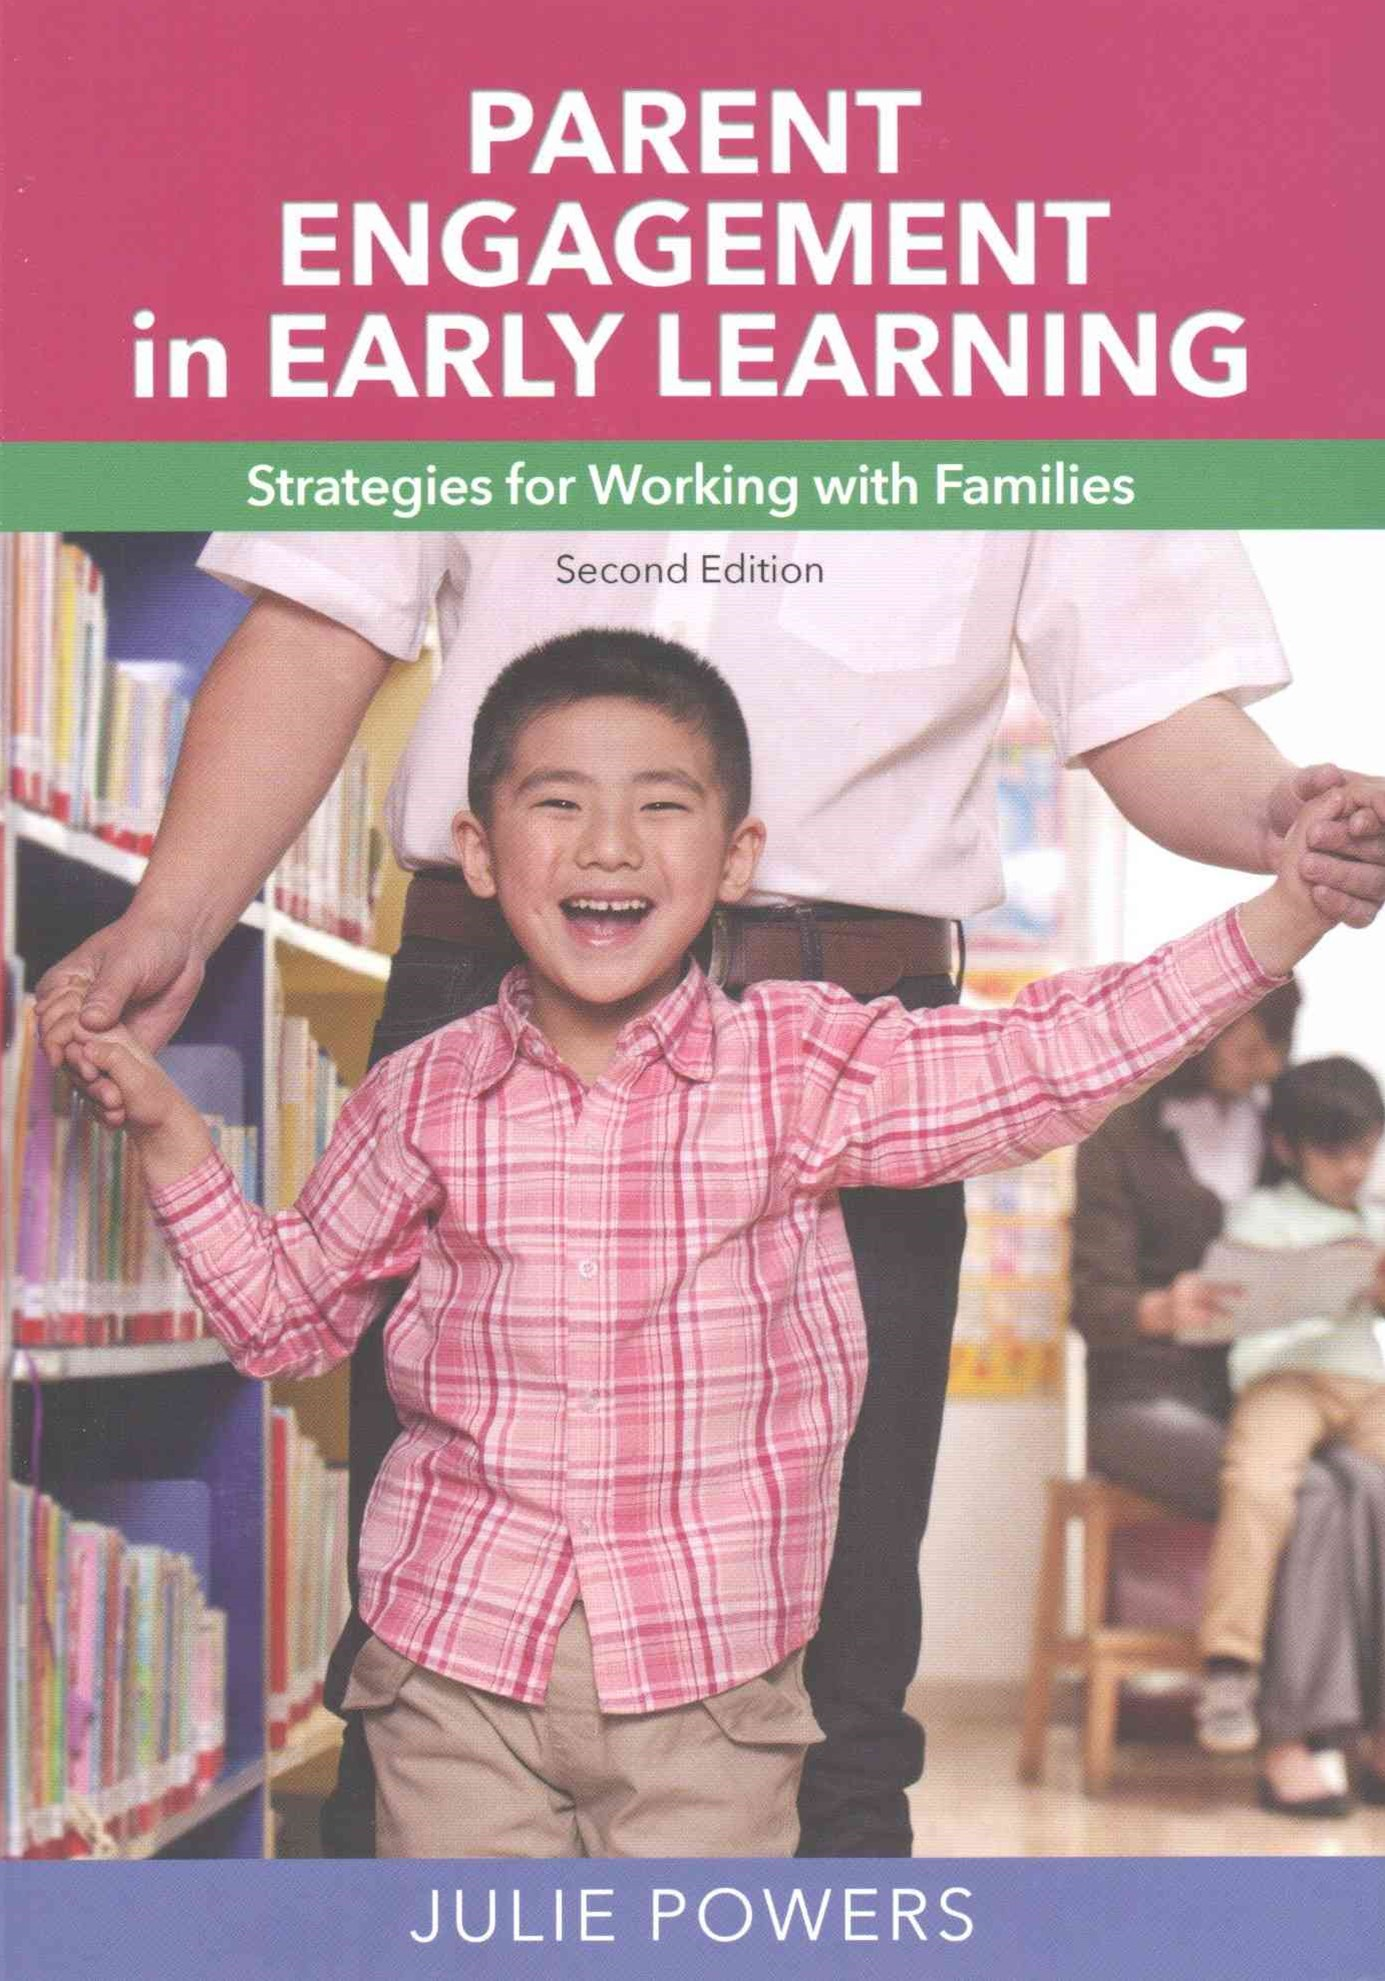 Parent Engagement in Early Learning